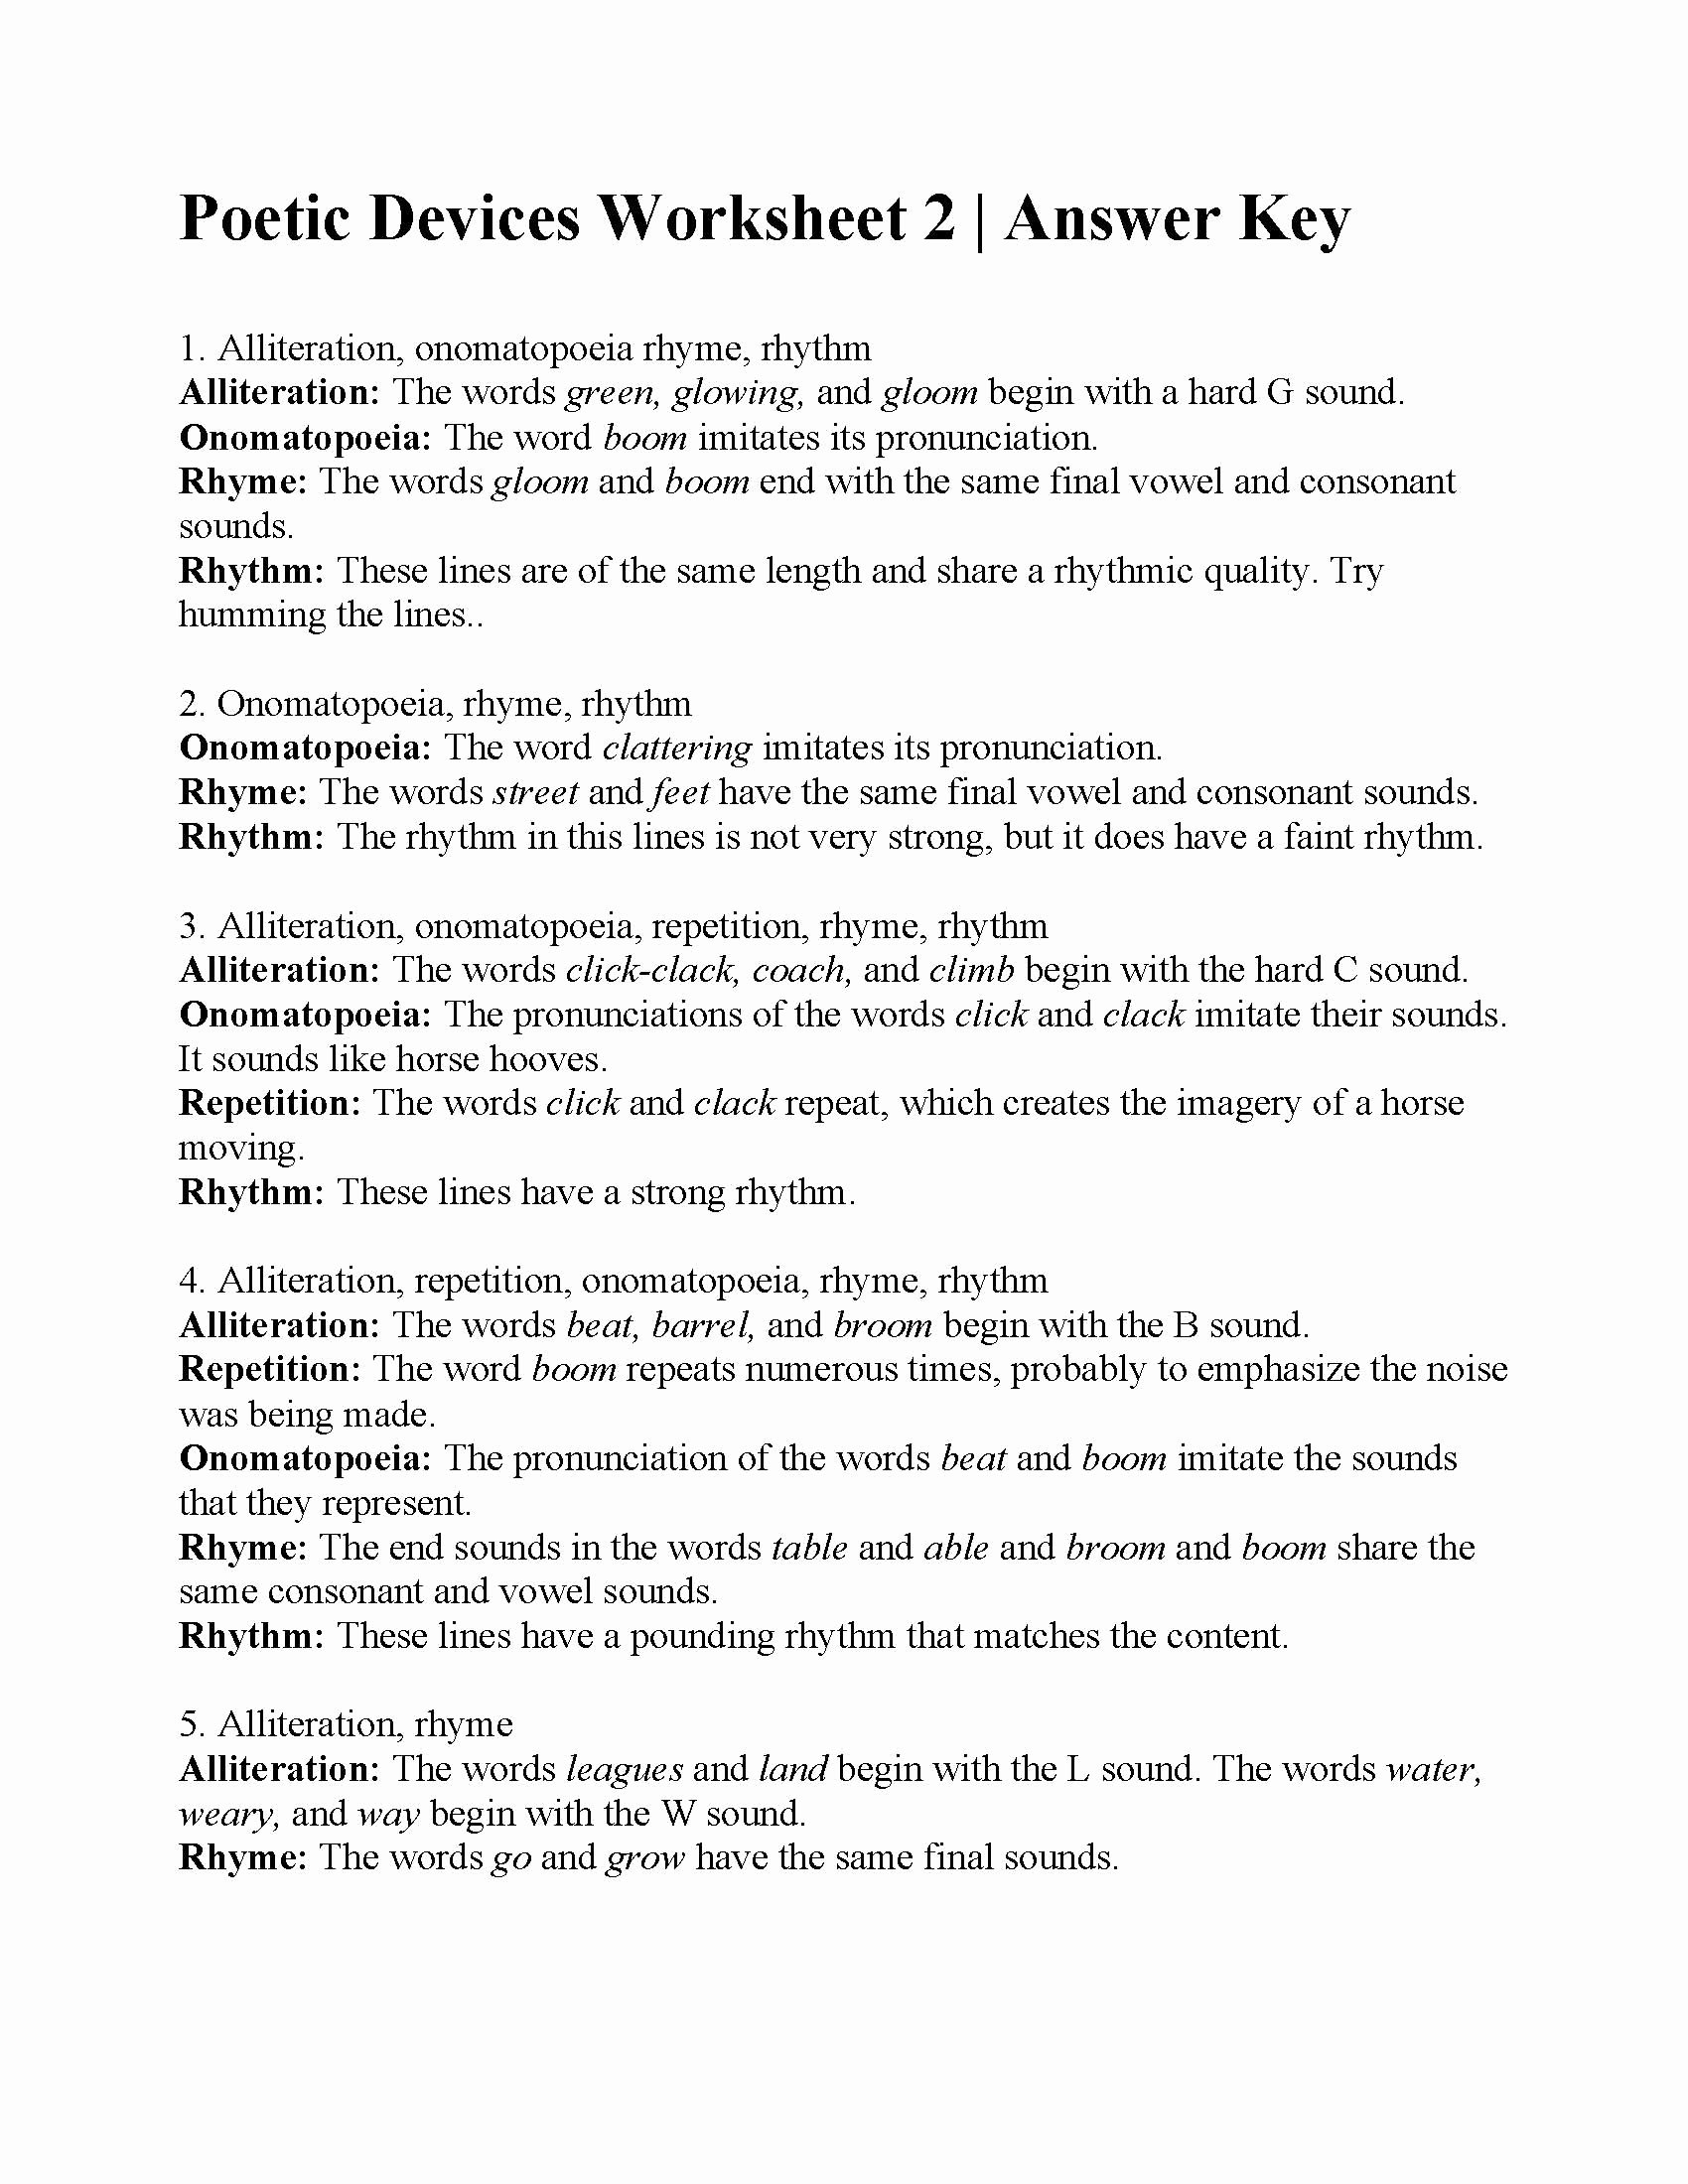 Sound Devices In Poetry Worksheet Inspirational Poetic Devices Worksheet 2